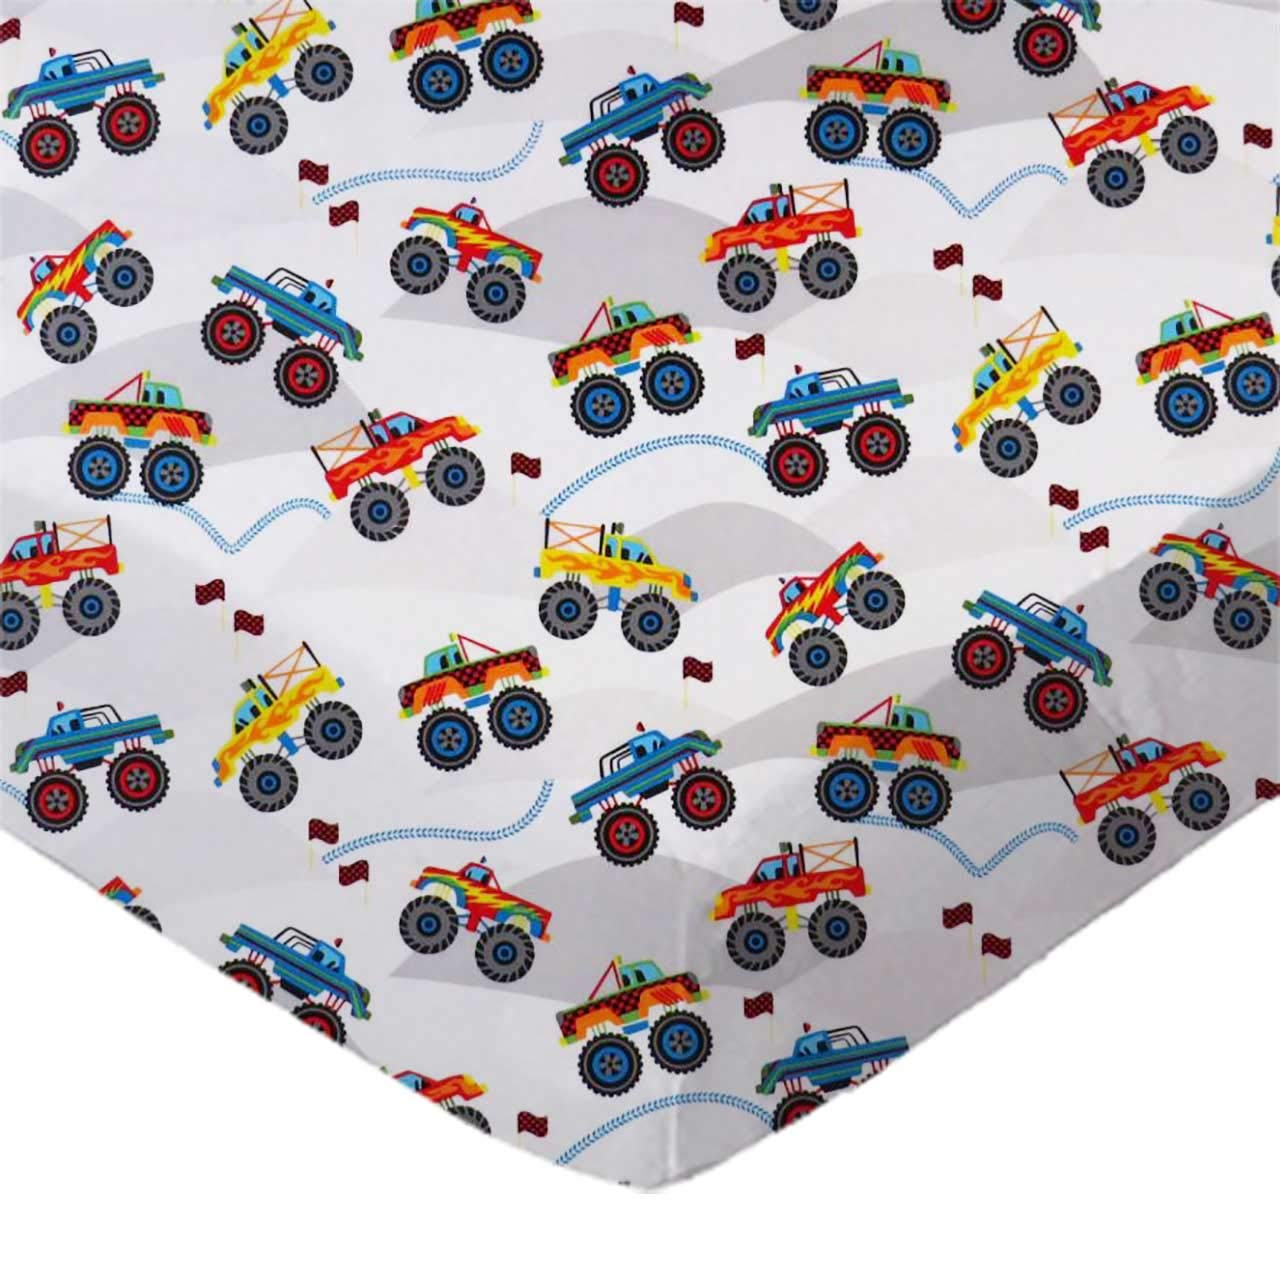 SheetWorld Fitted 100% Cotton Percale Portable Mini Crib Sheet 24 x 38, Monster Trucks, Made in USA by SHEETWORLD.COM